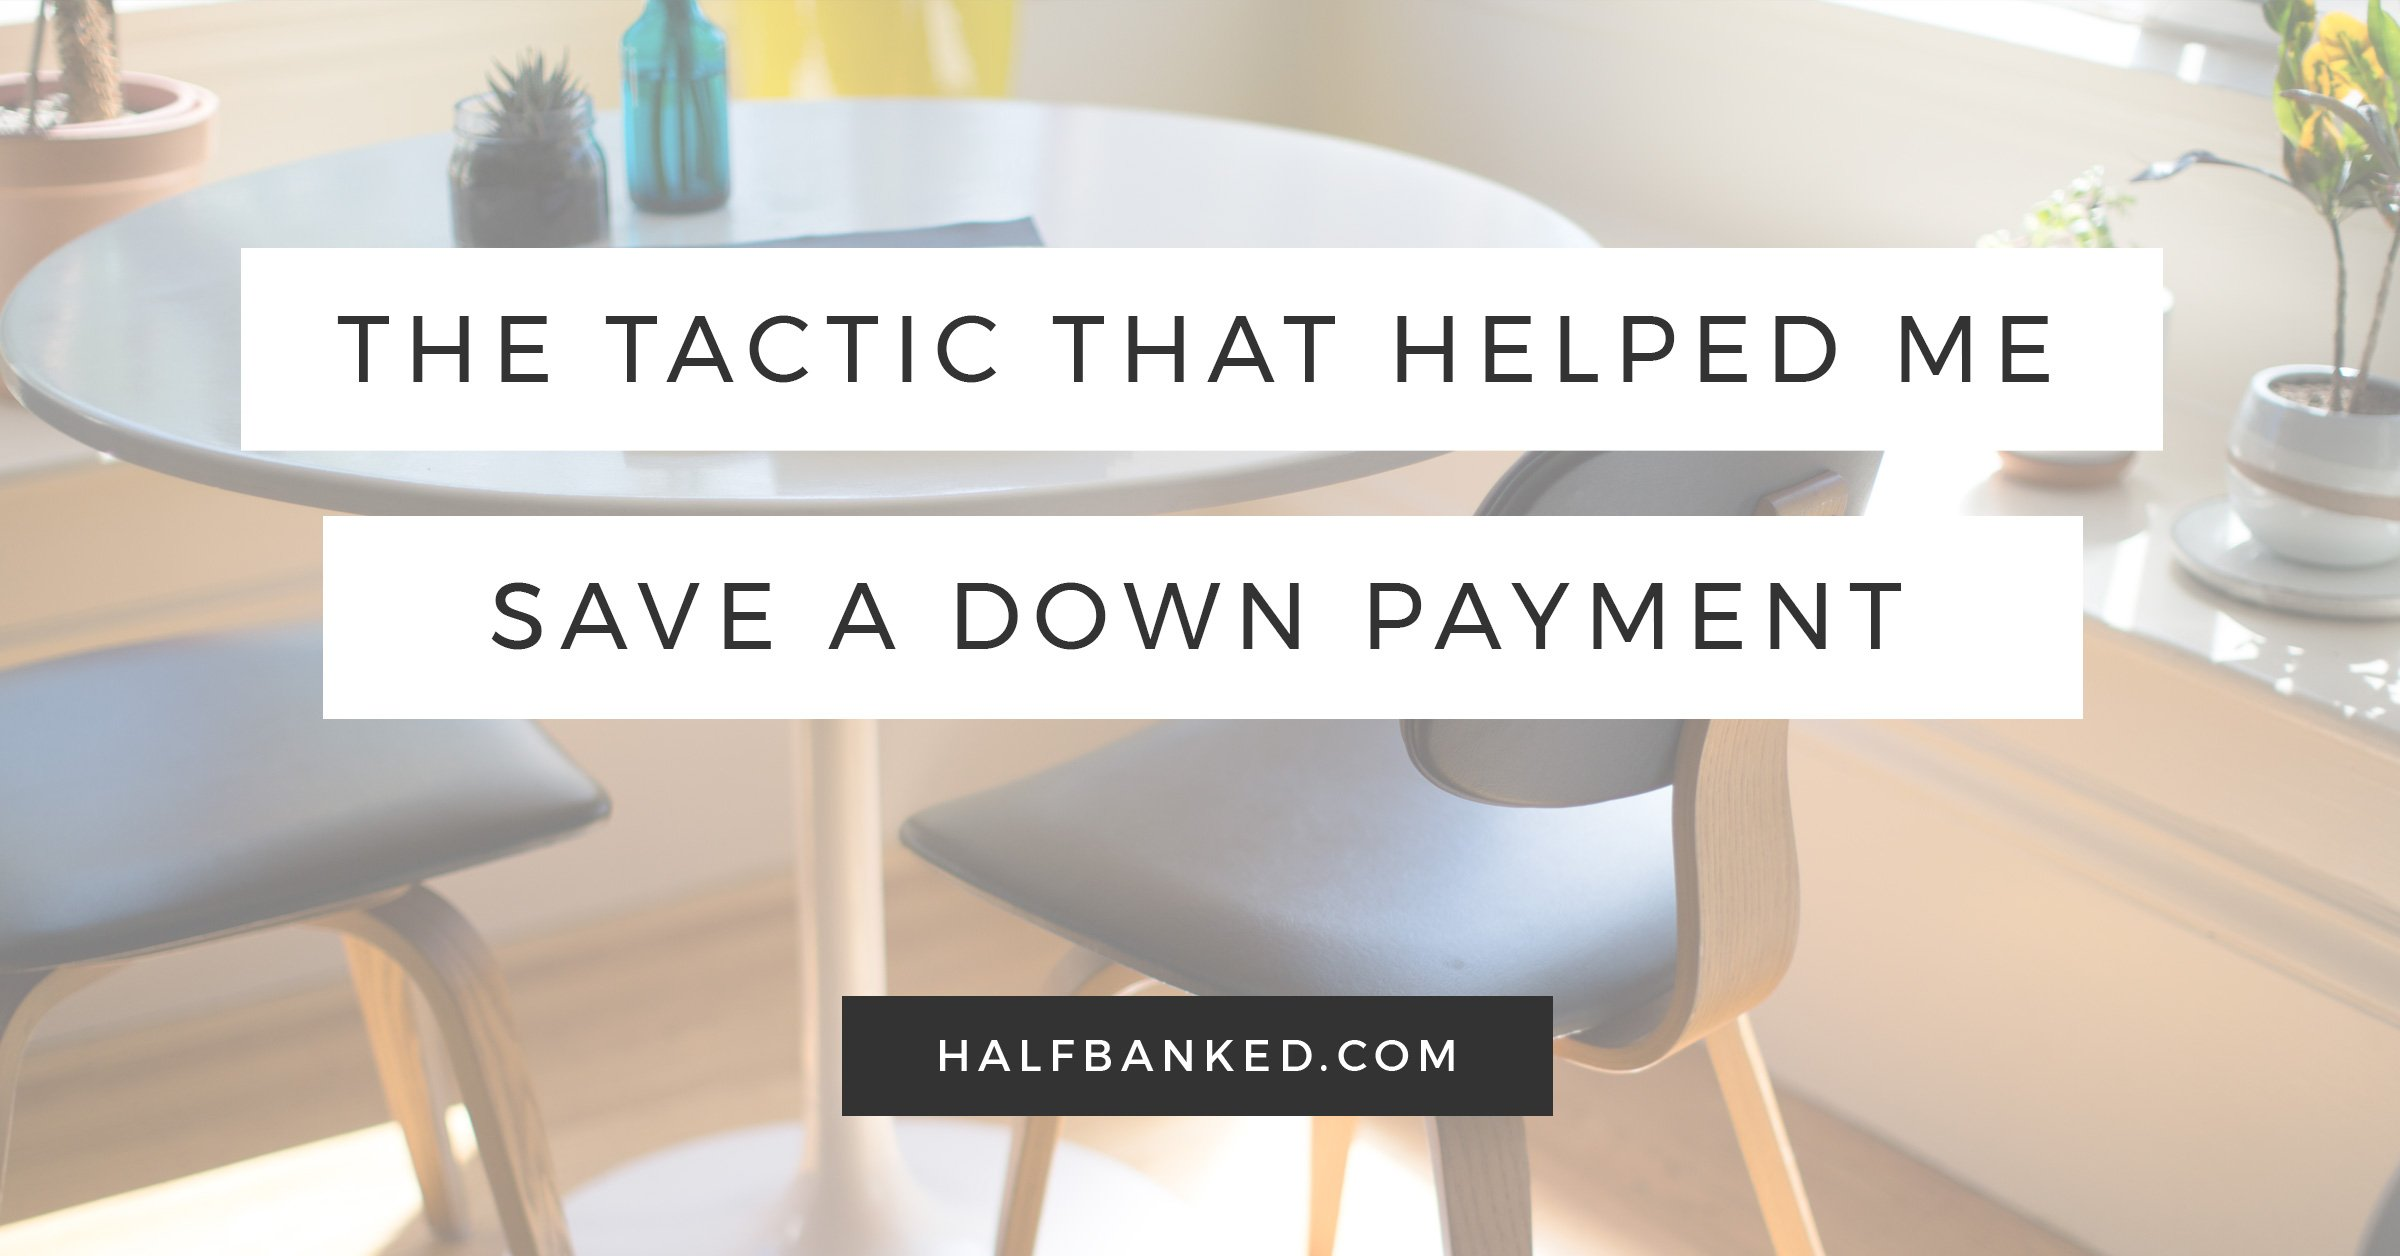 The Tactic That Helped Me Hit My House Down Payment